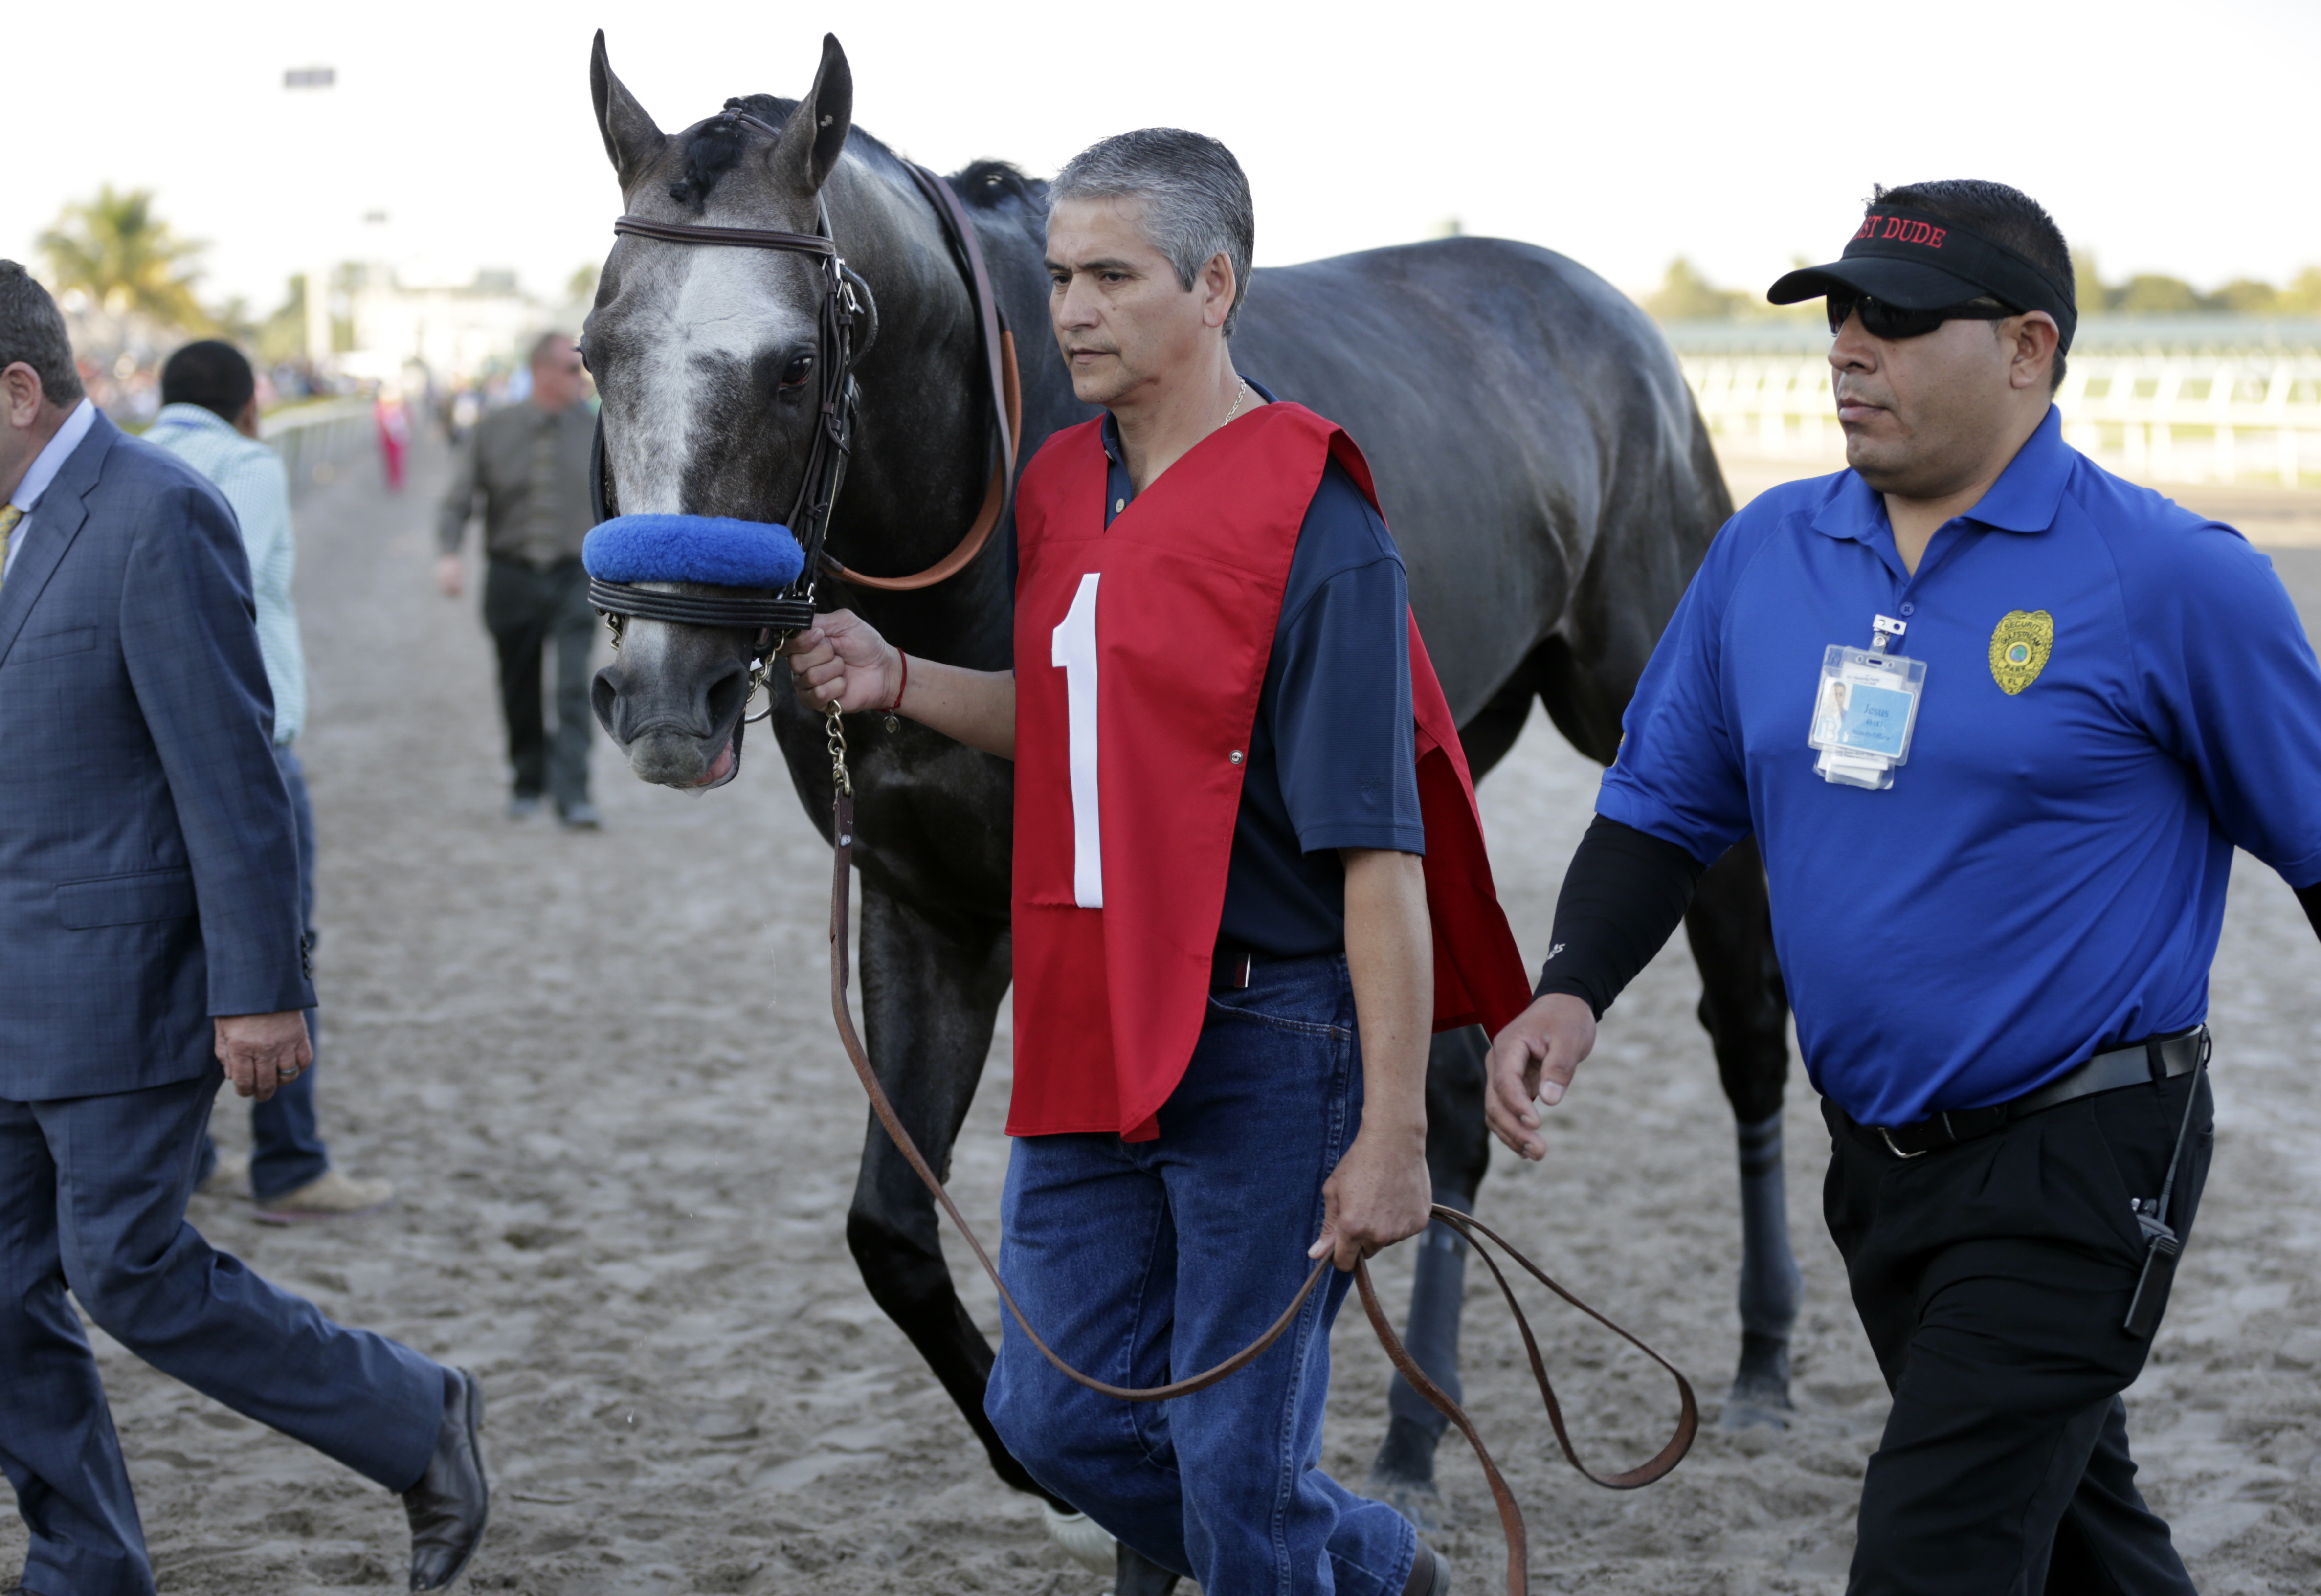 FILE - In this Jan. 28, 2017, file photo, Arrogate is led to the paddock before the inaugural running of the $12 million Pegasus World Cup horse race at Gulfstream Park, in Hallandale Beach, Fla. Arrogate returns to racing on Saturday in the Del Mar Handi